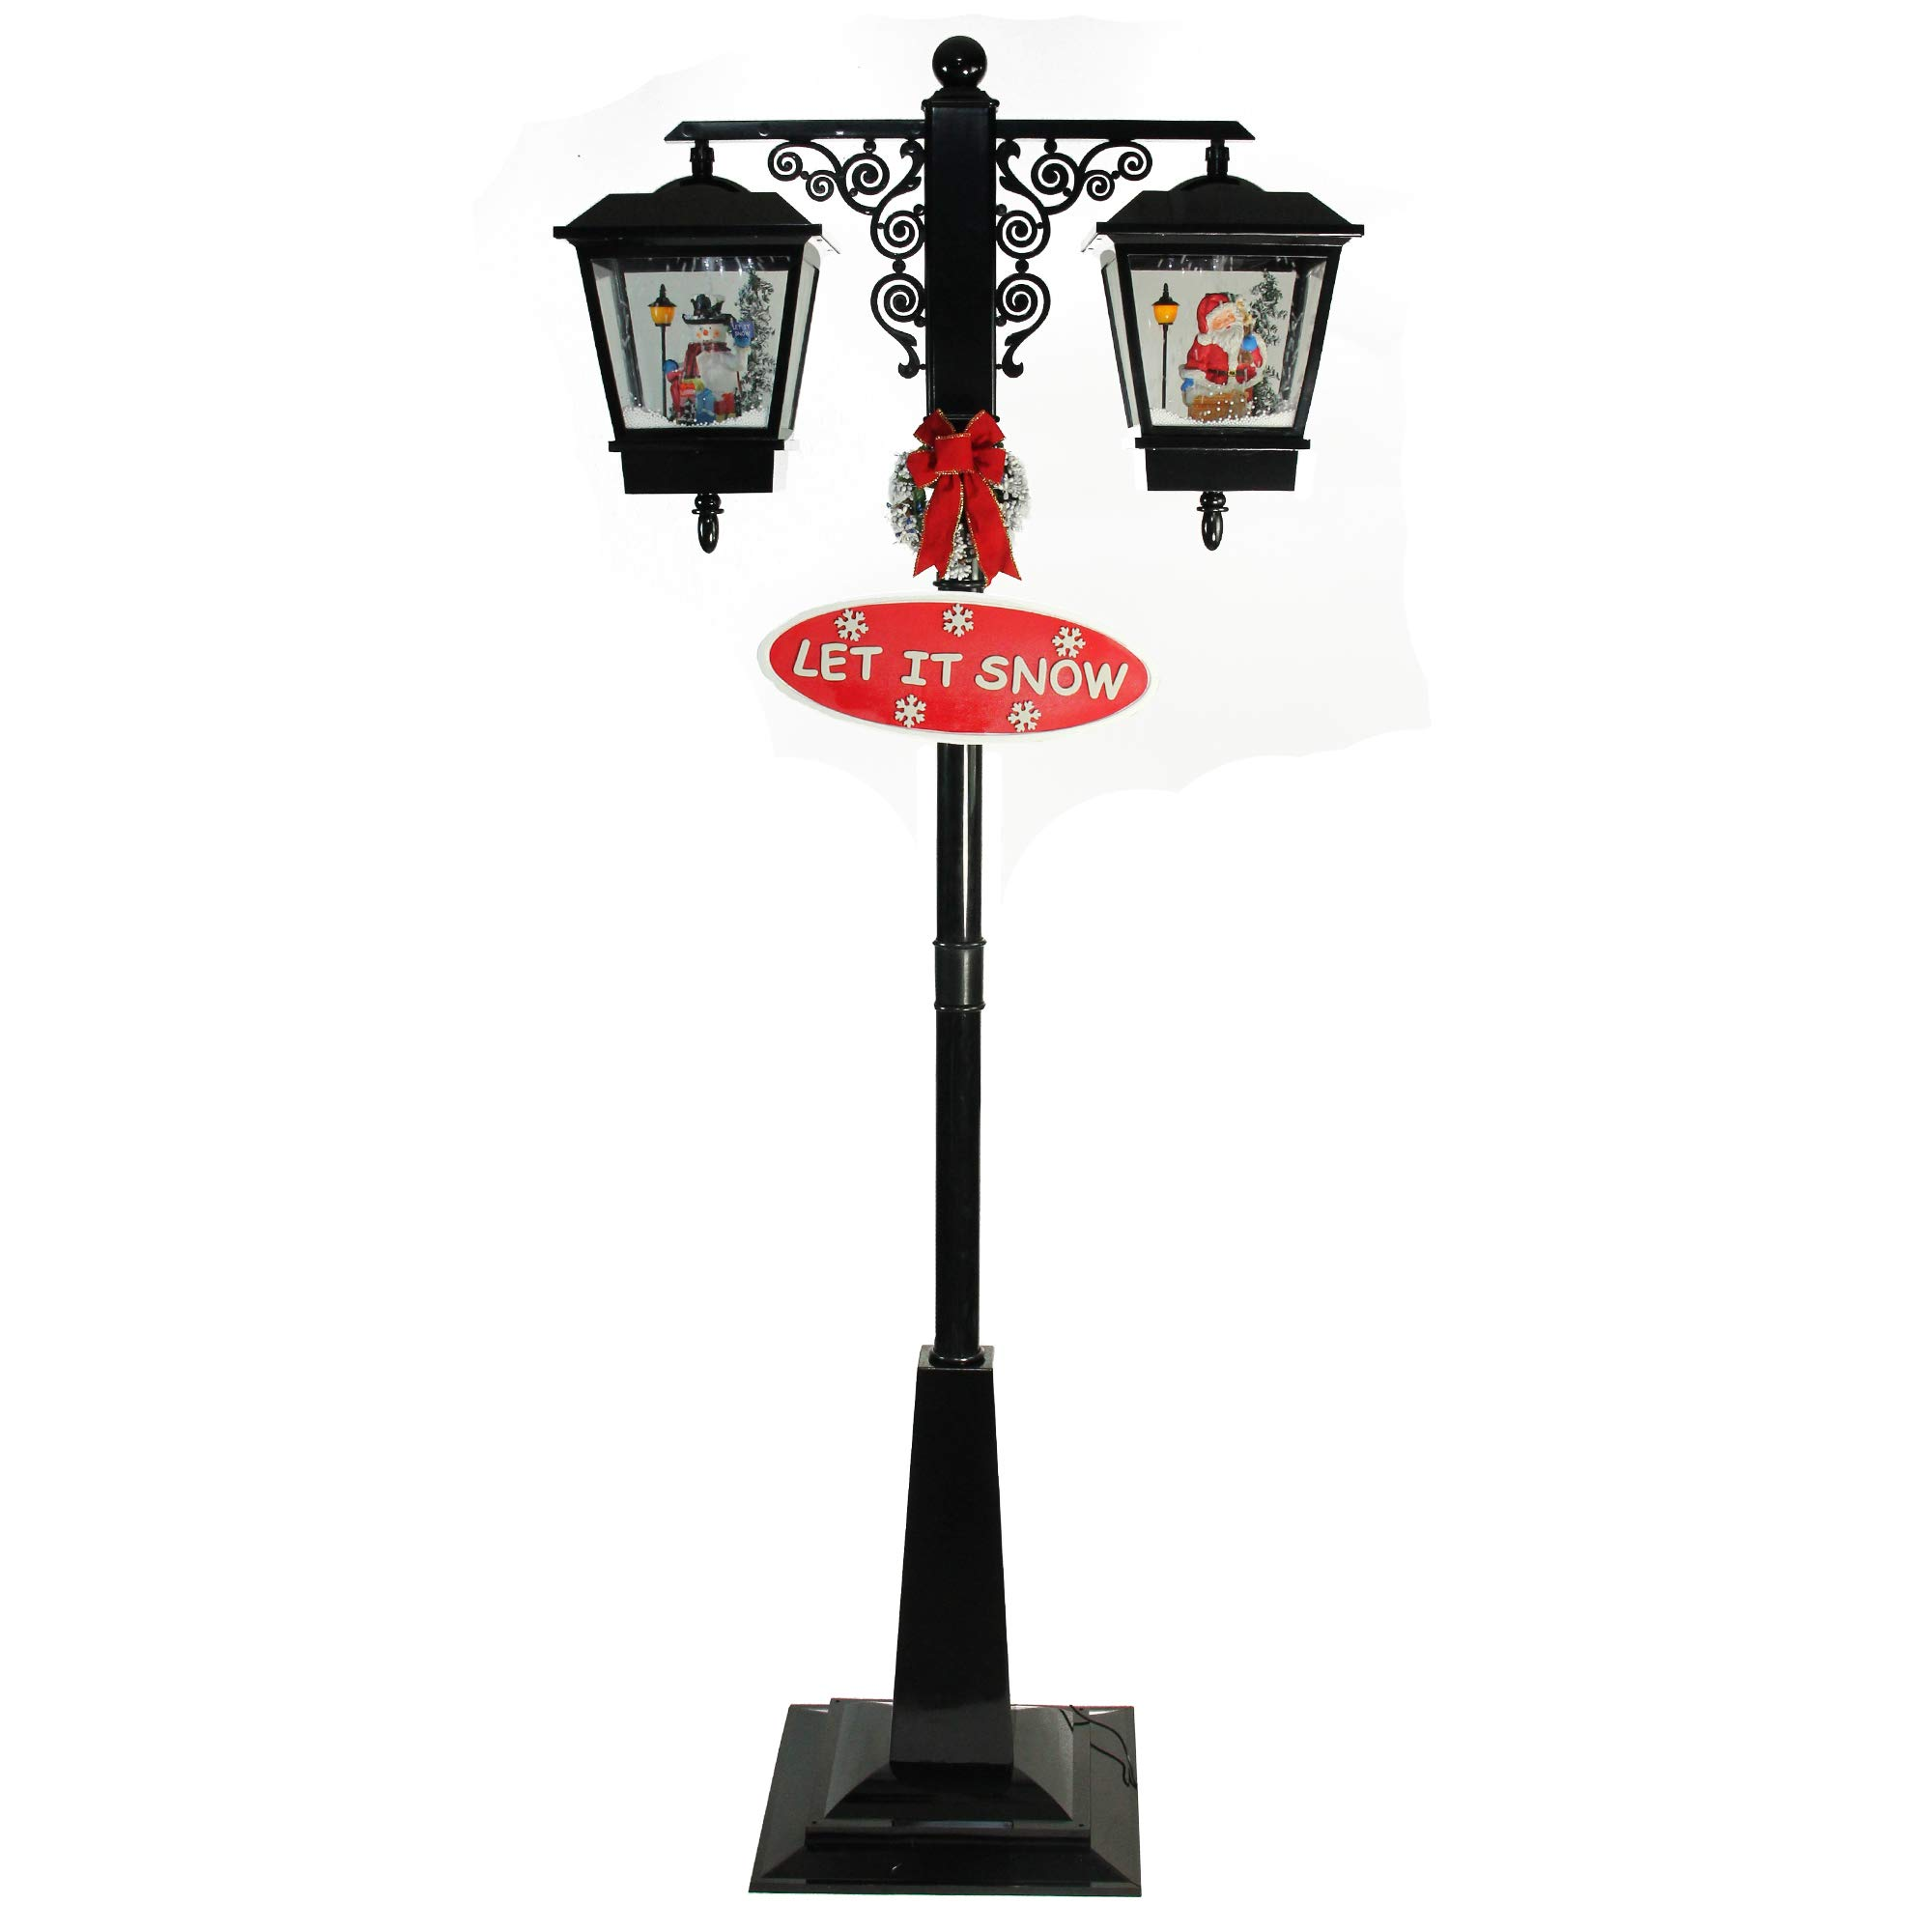 Northlight 74'' Lighted Black Musical Snowing Santa and Snowman Double Christmas Street Lamp